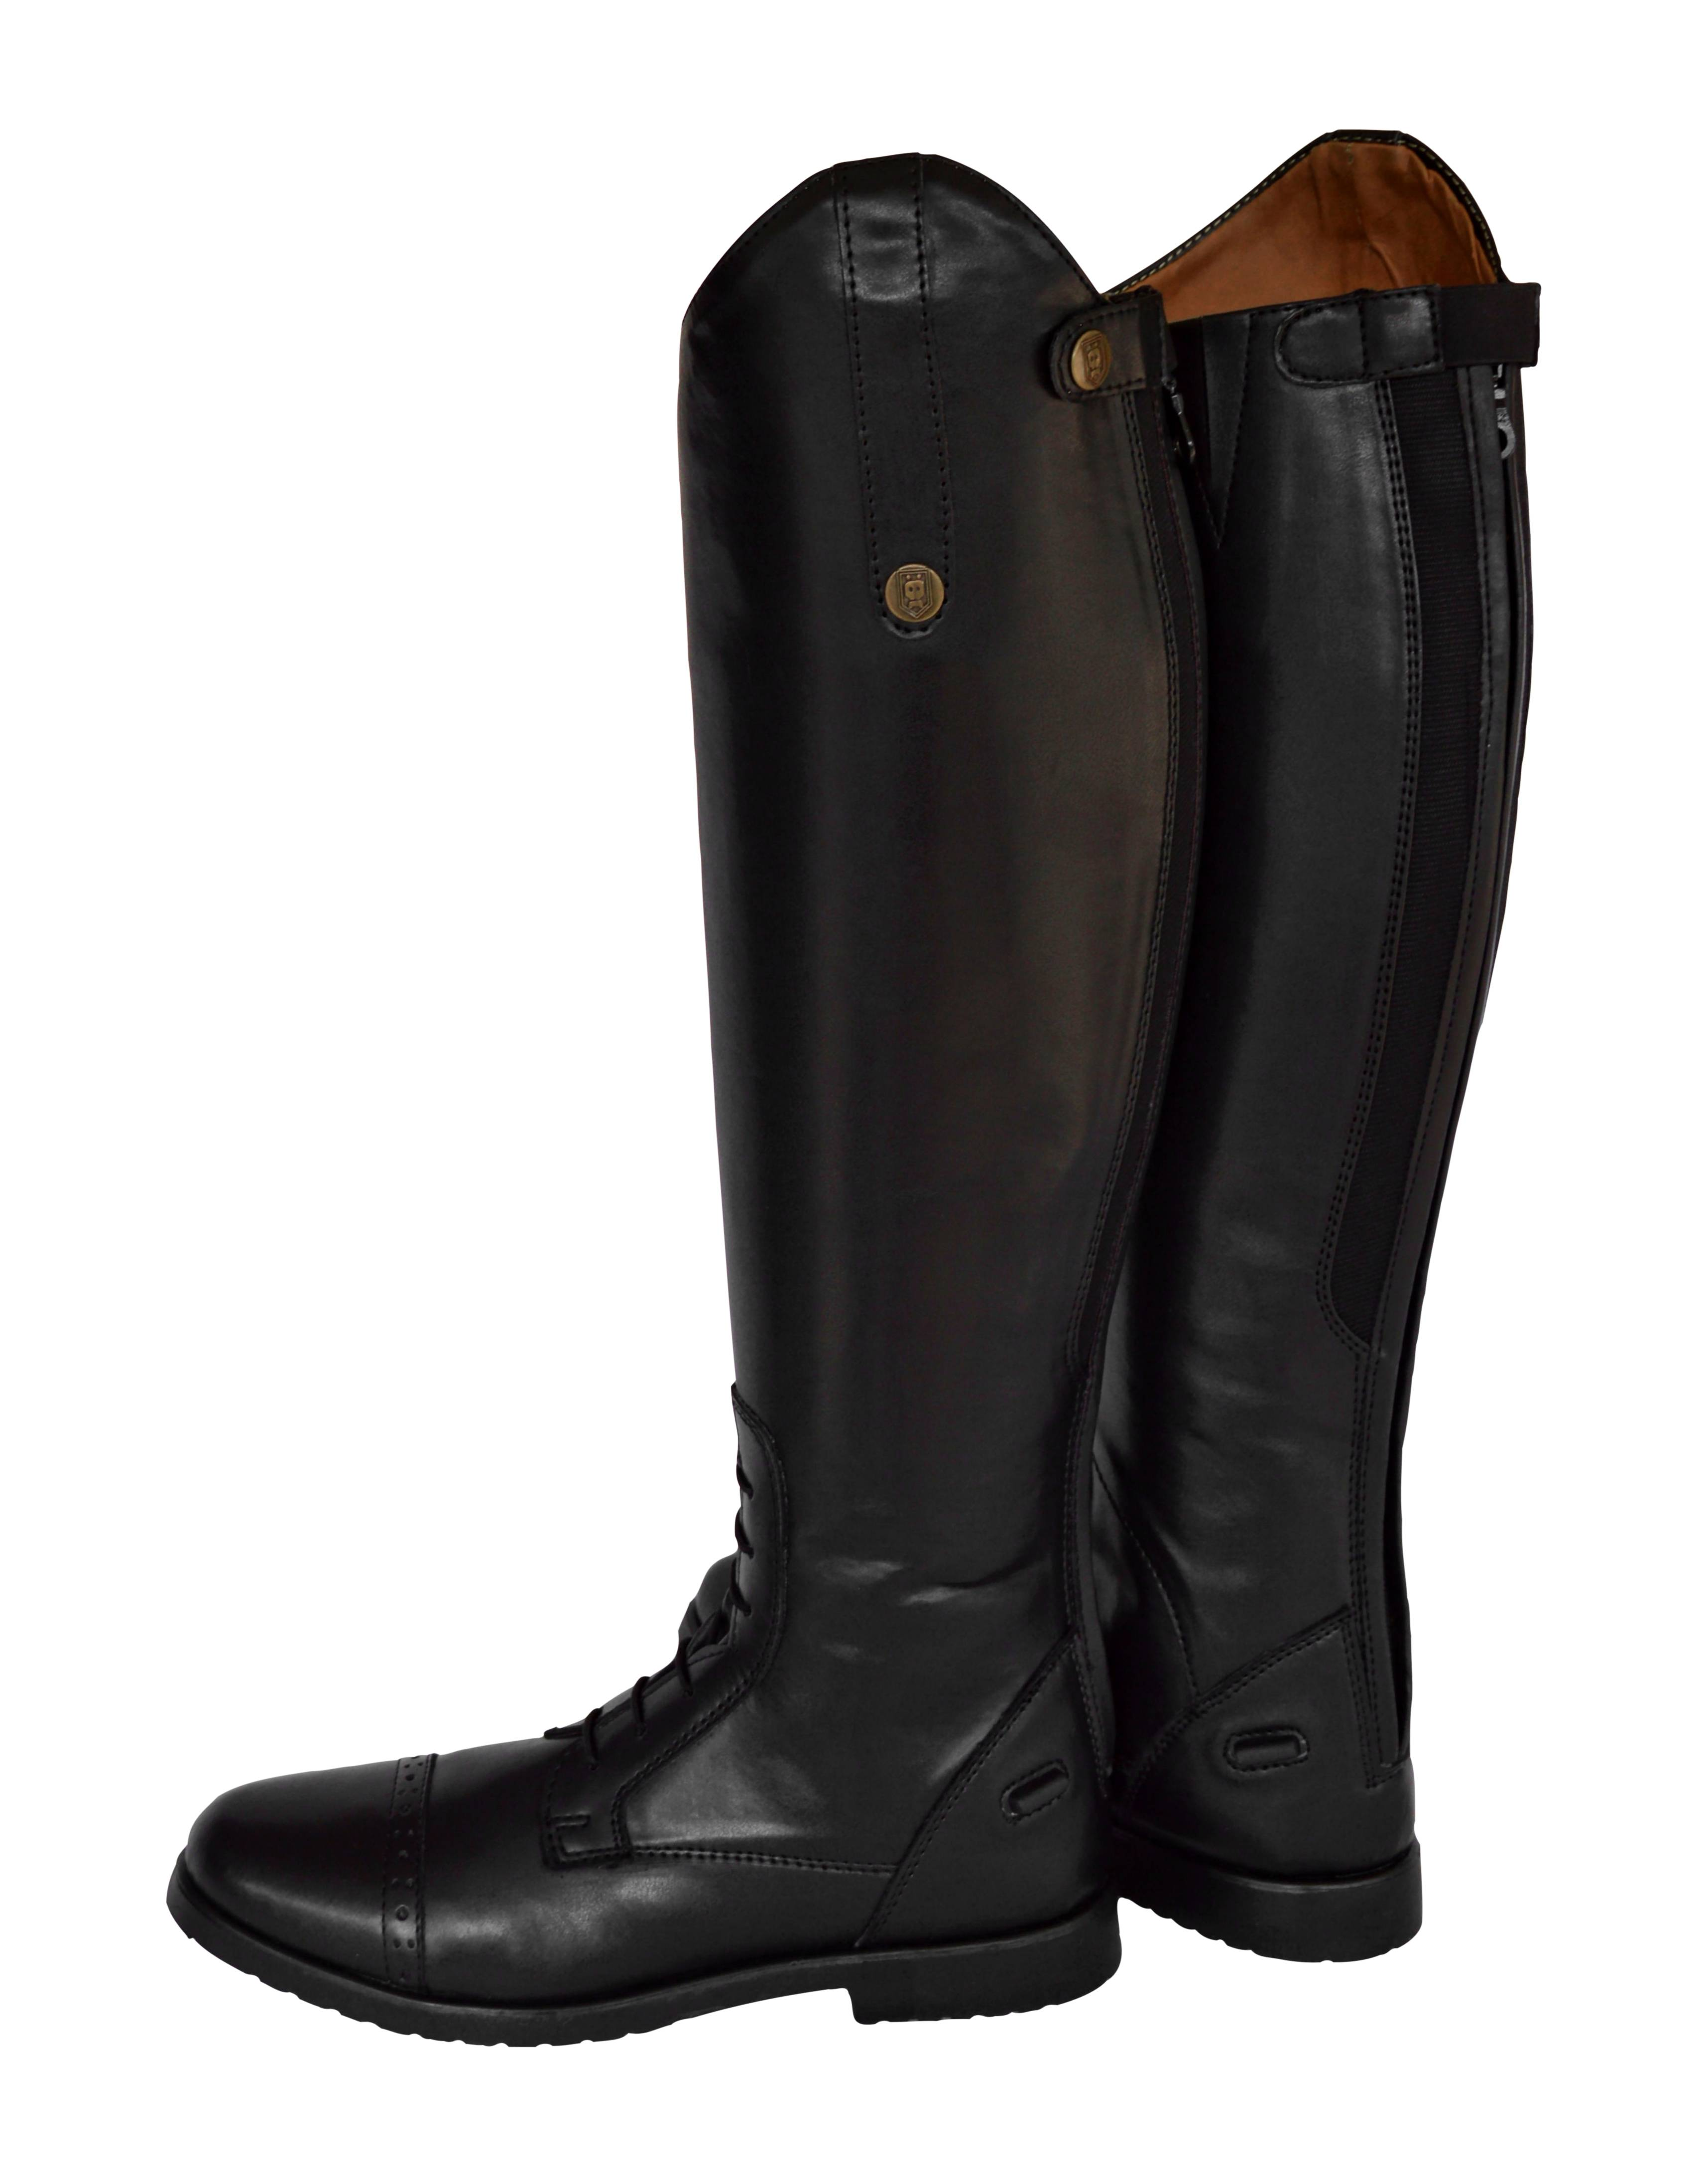 Treadstone Novice Hunter Field Boots - Ladies